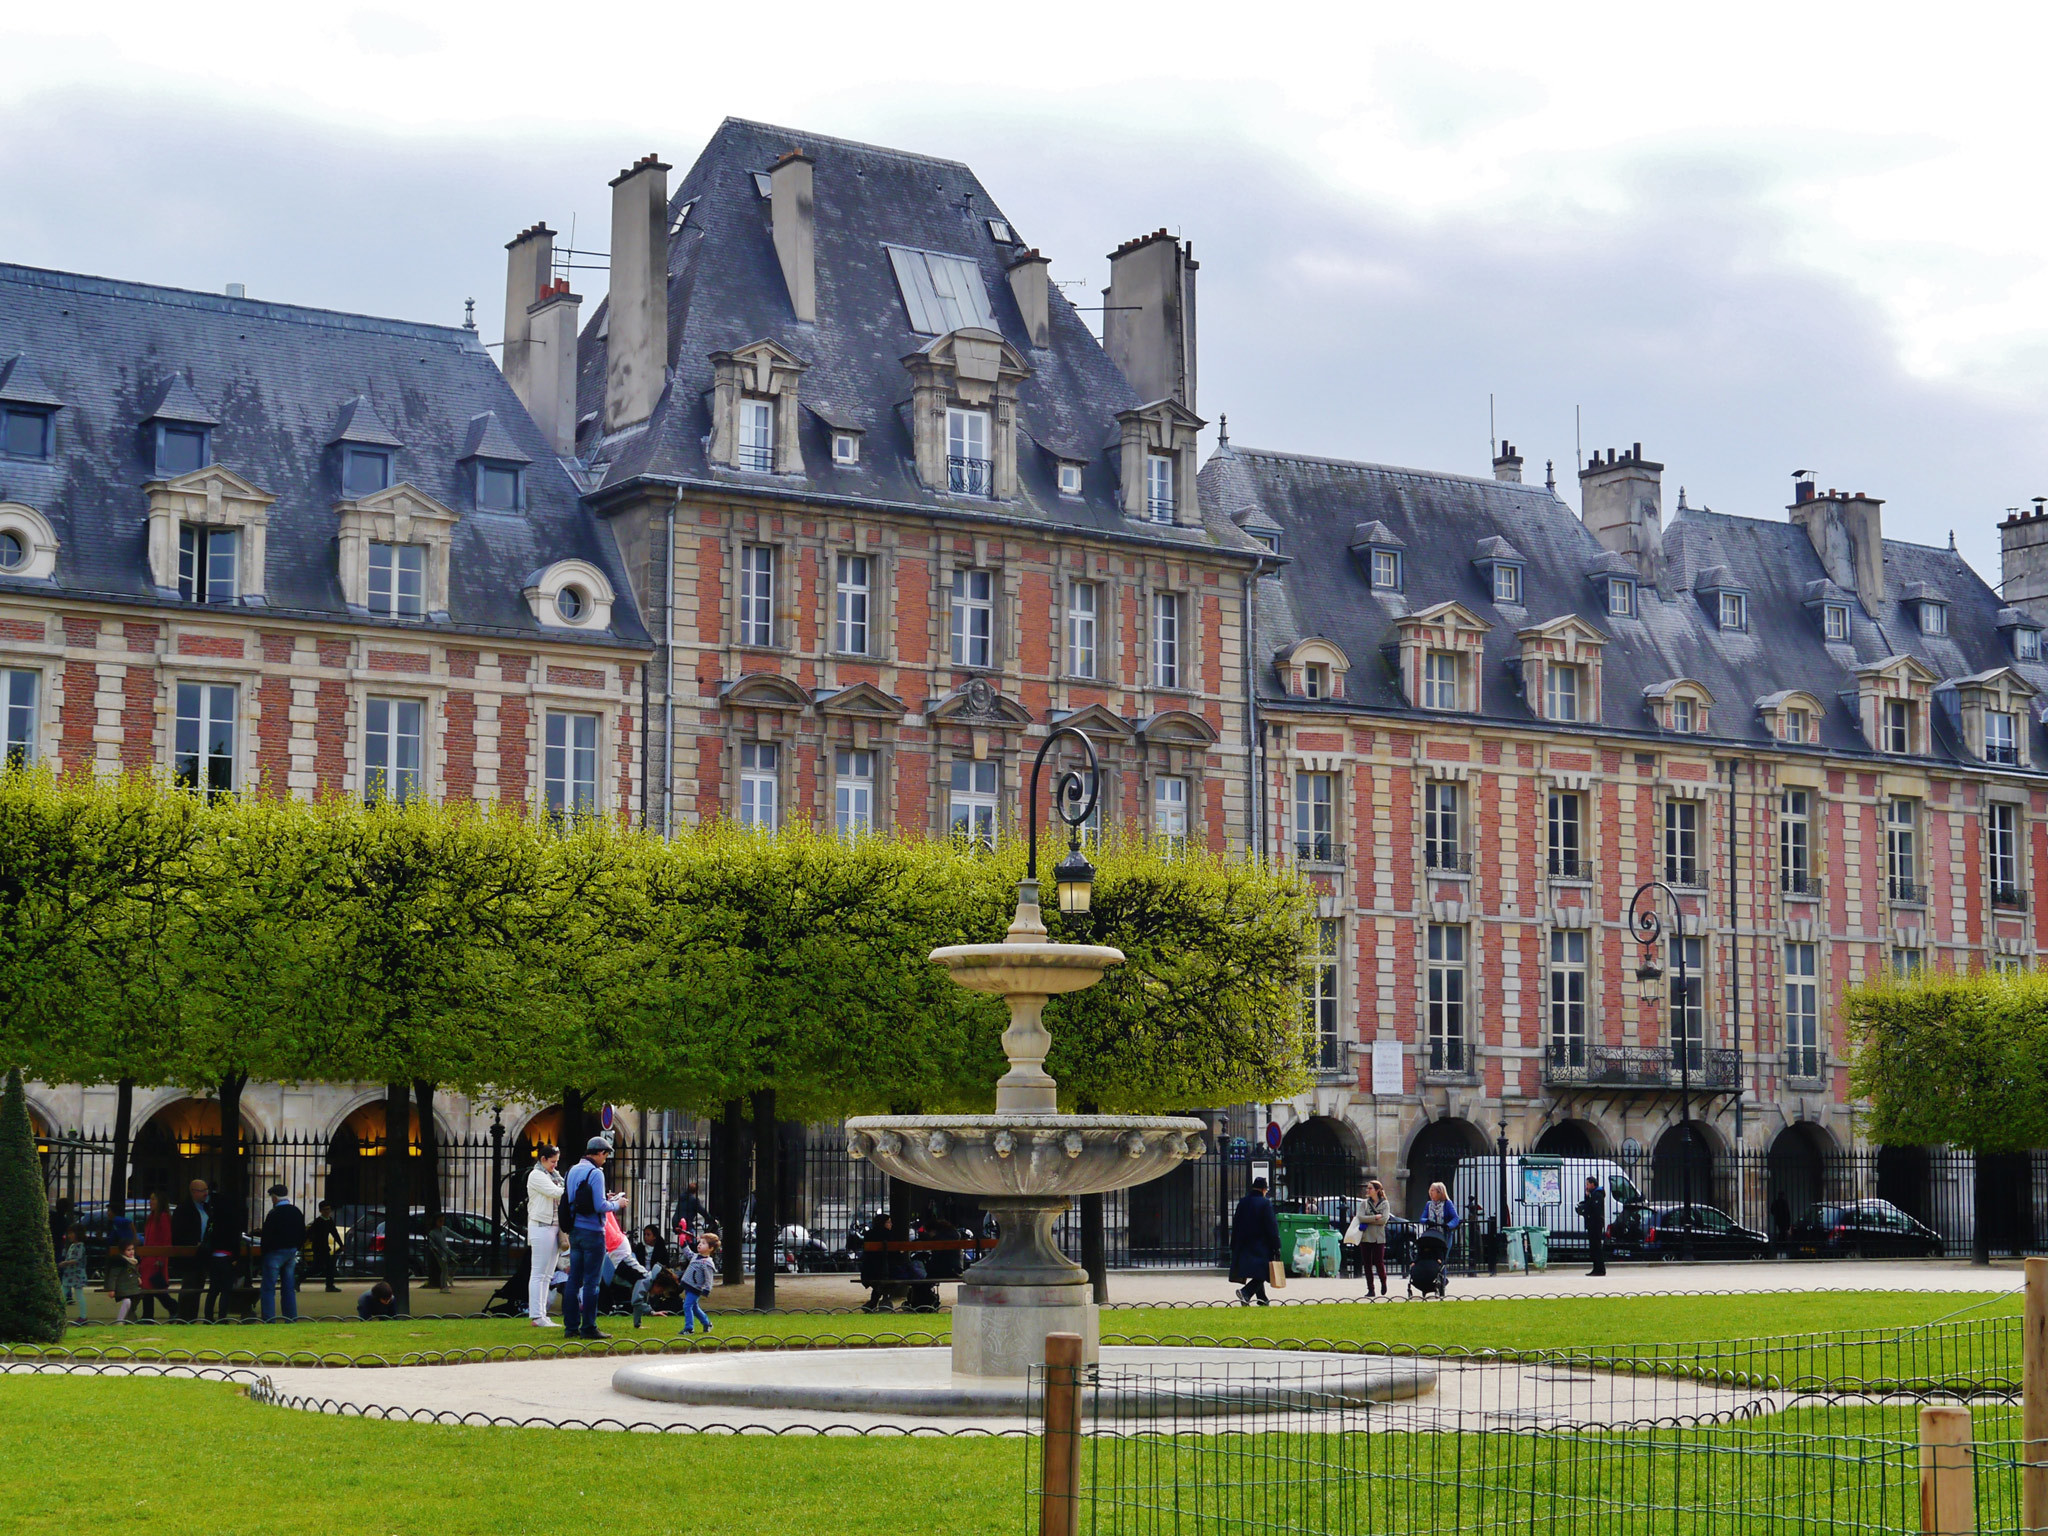 The park in the Place des Vosges in the Marais